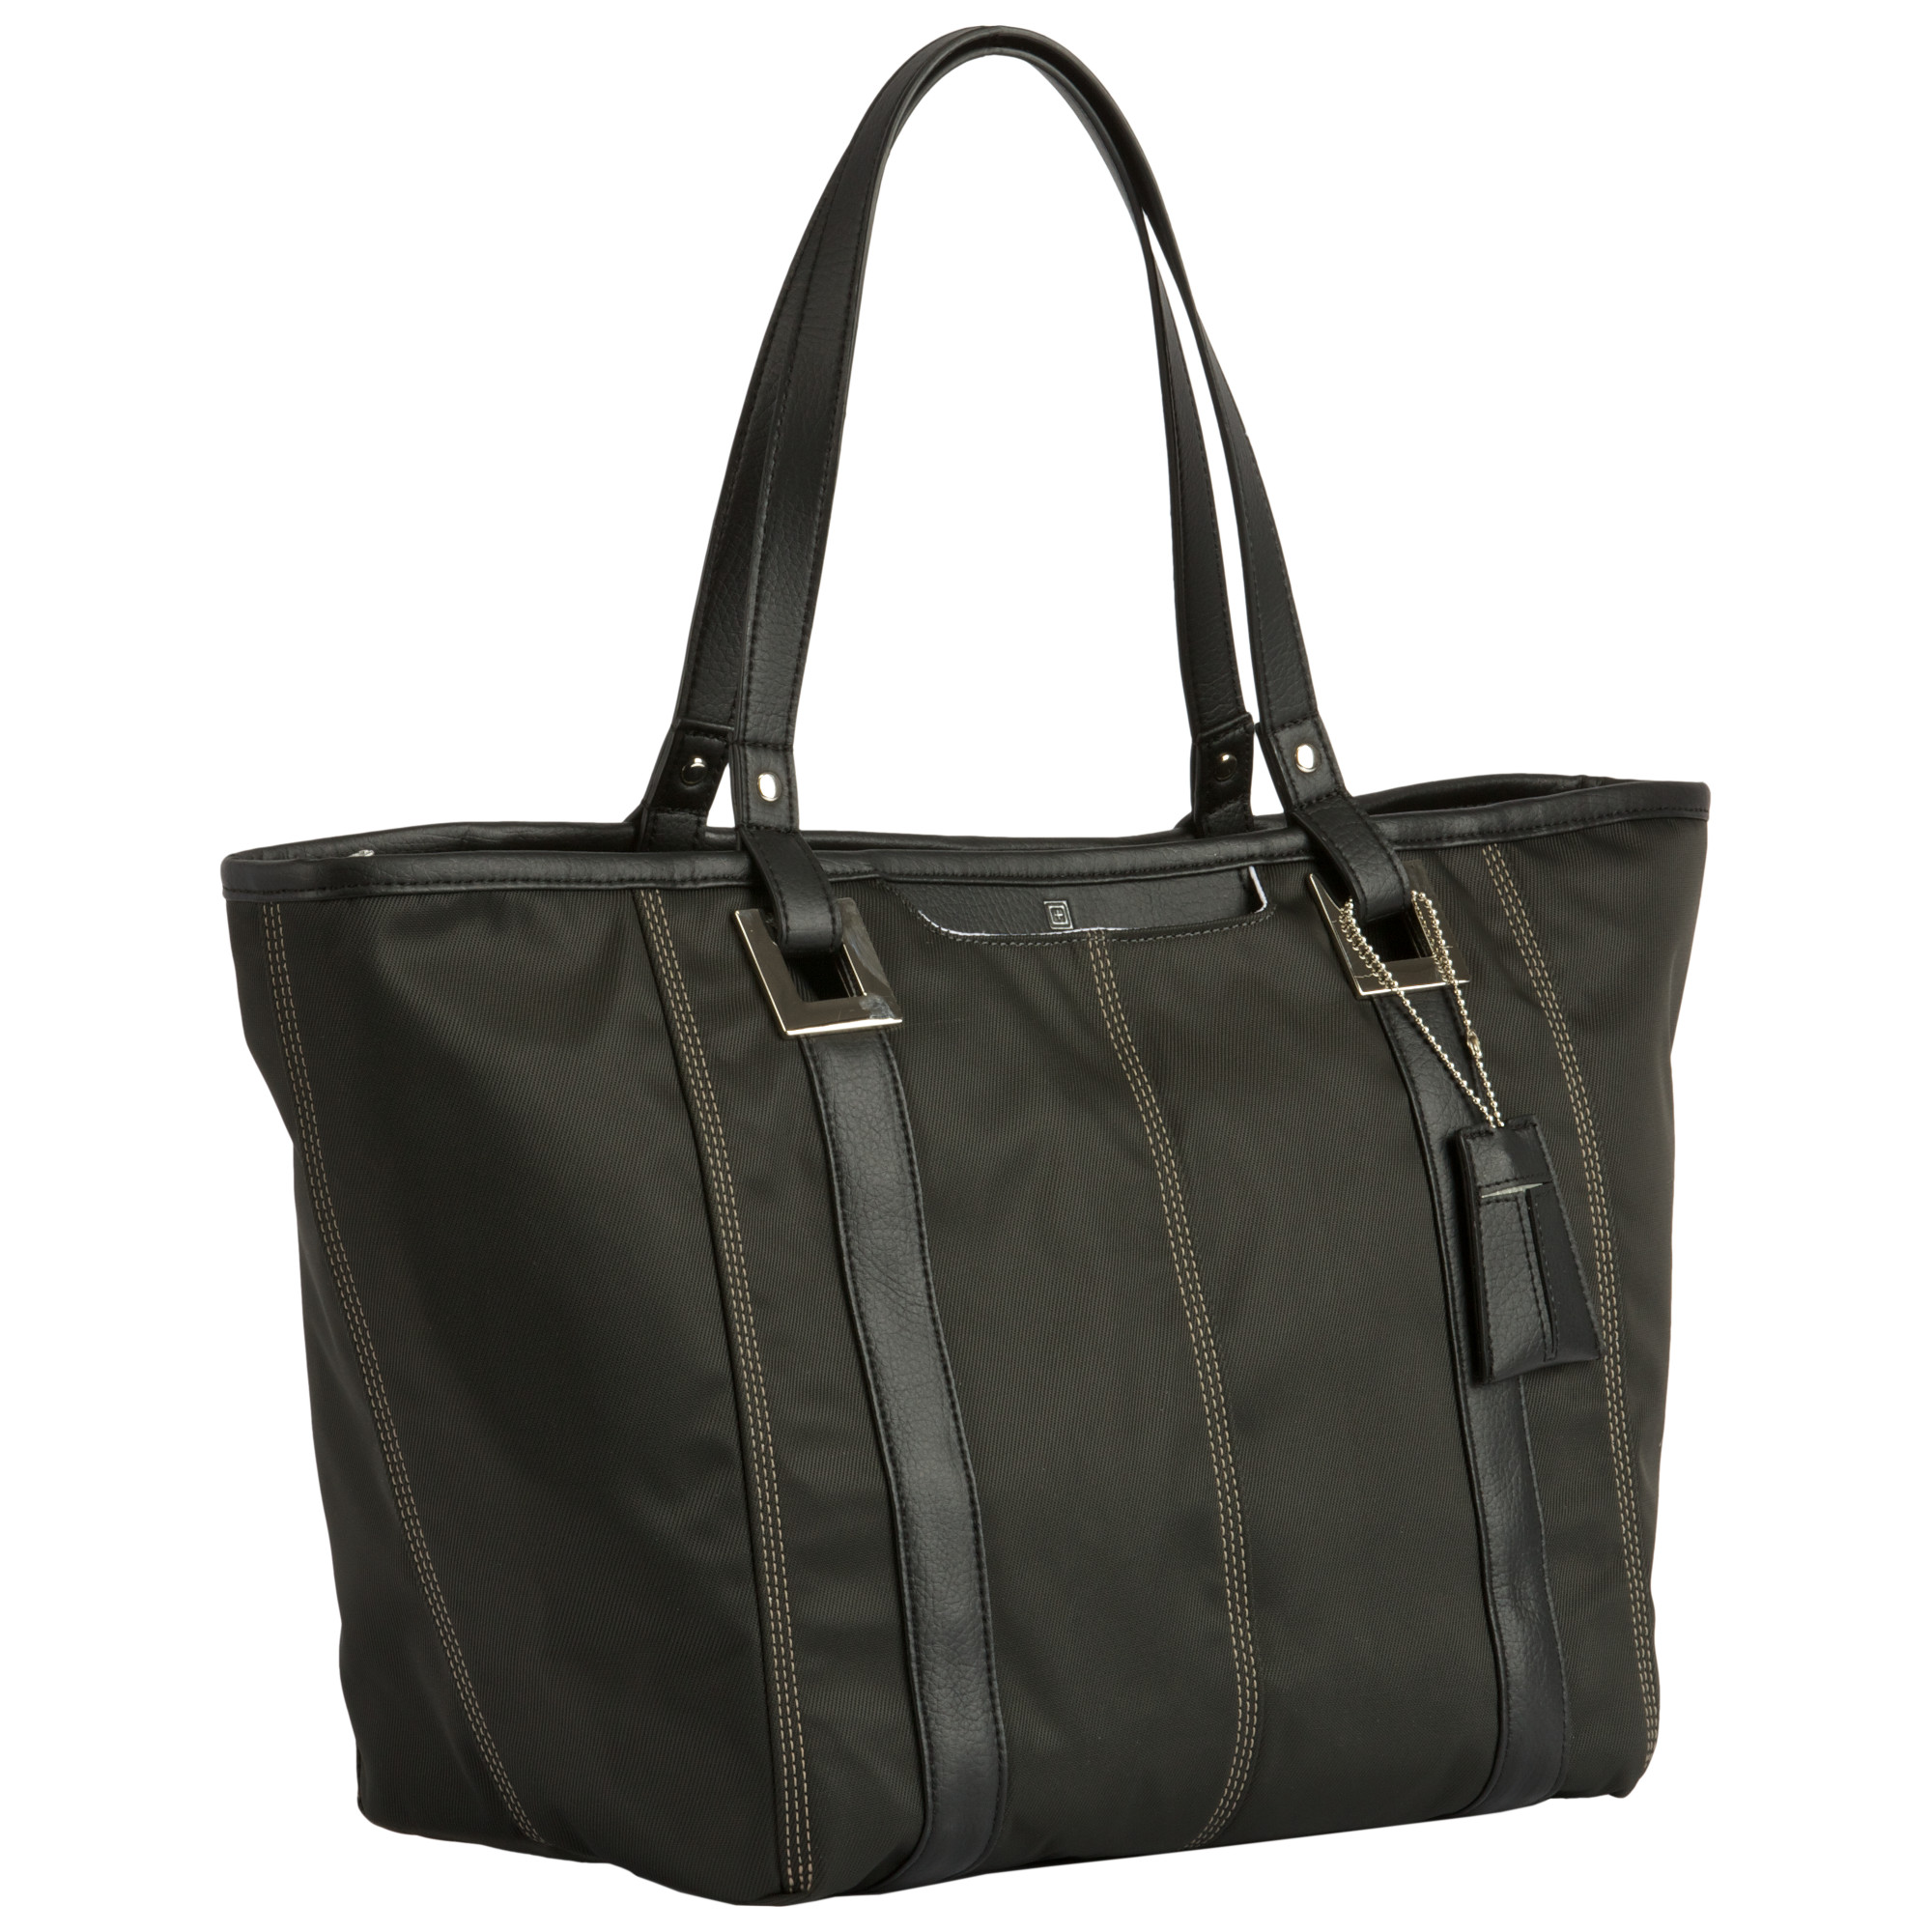 5.11 Tactical Women's FF Lucy Tote